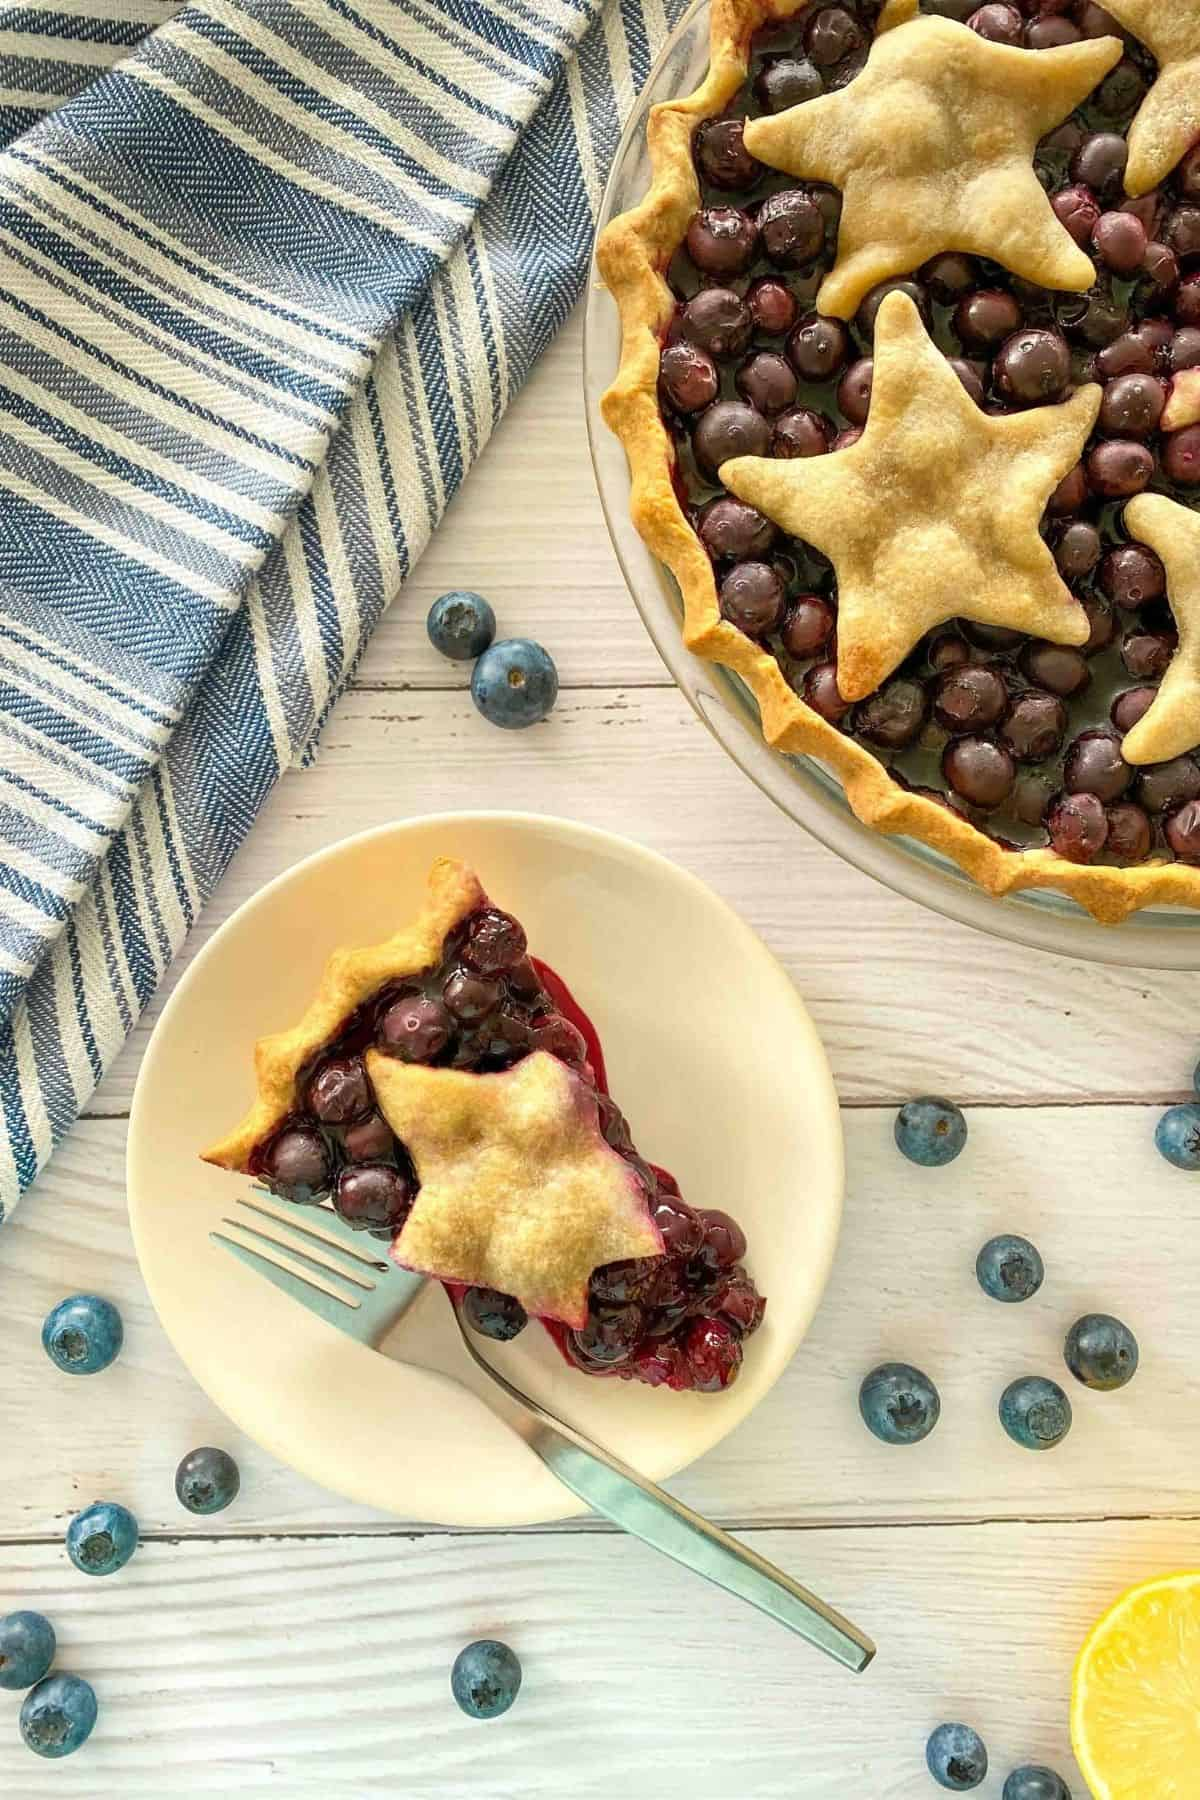 Slice of blueberry pie on white dish with fork with remaining pie in background.